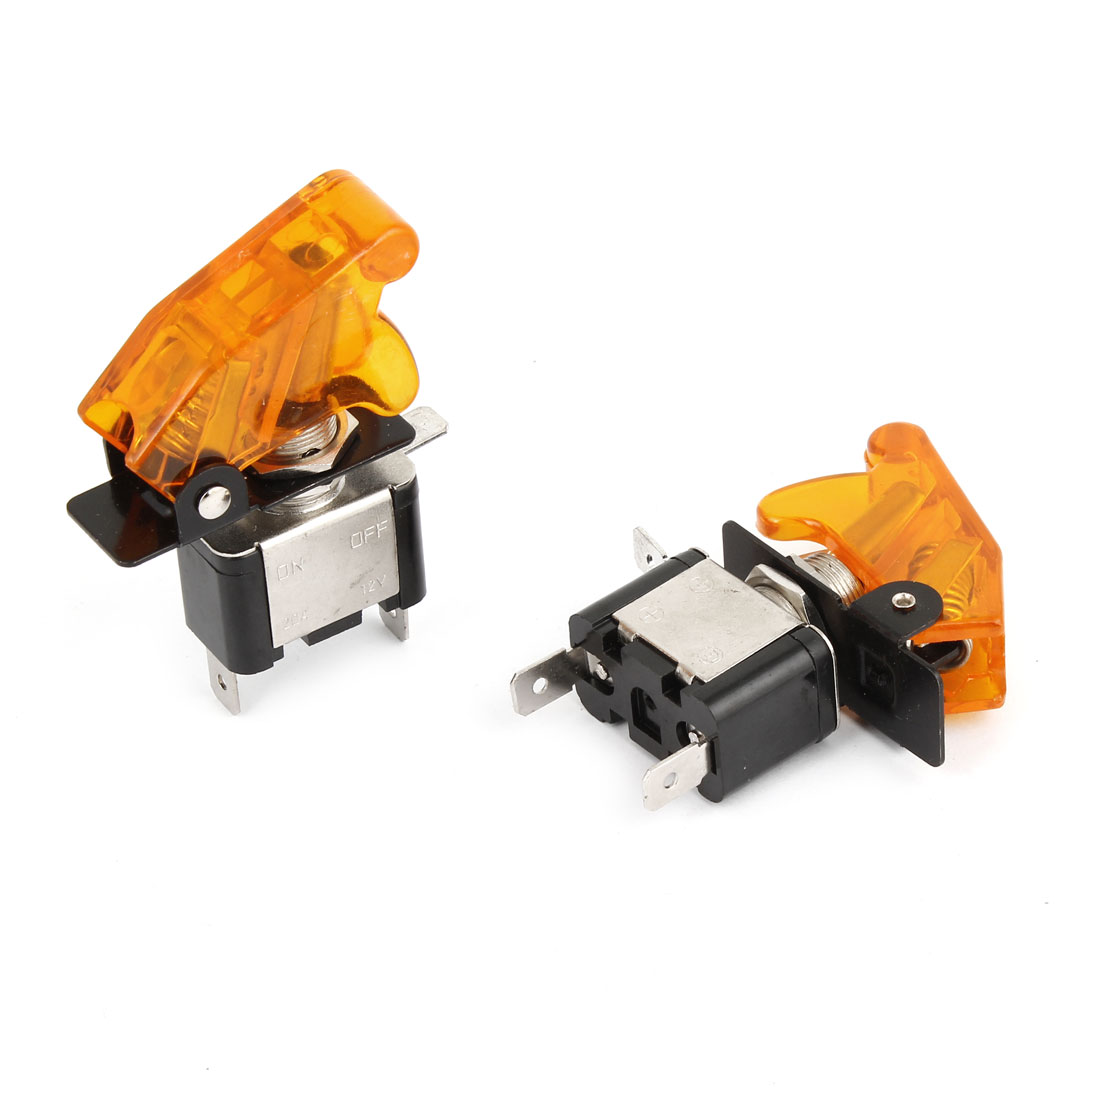 DC 12V 20A Yellow LED Illumination SPST ON/OFF Racing Car Toggle Switch 2 Pcs